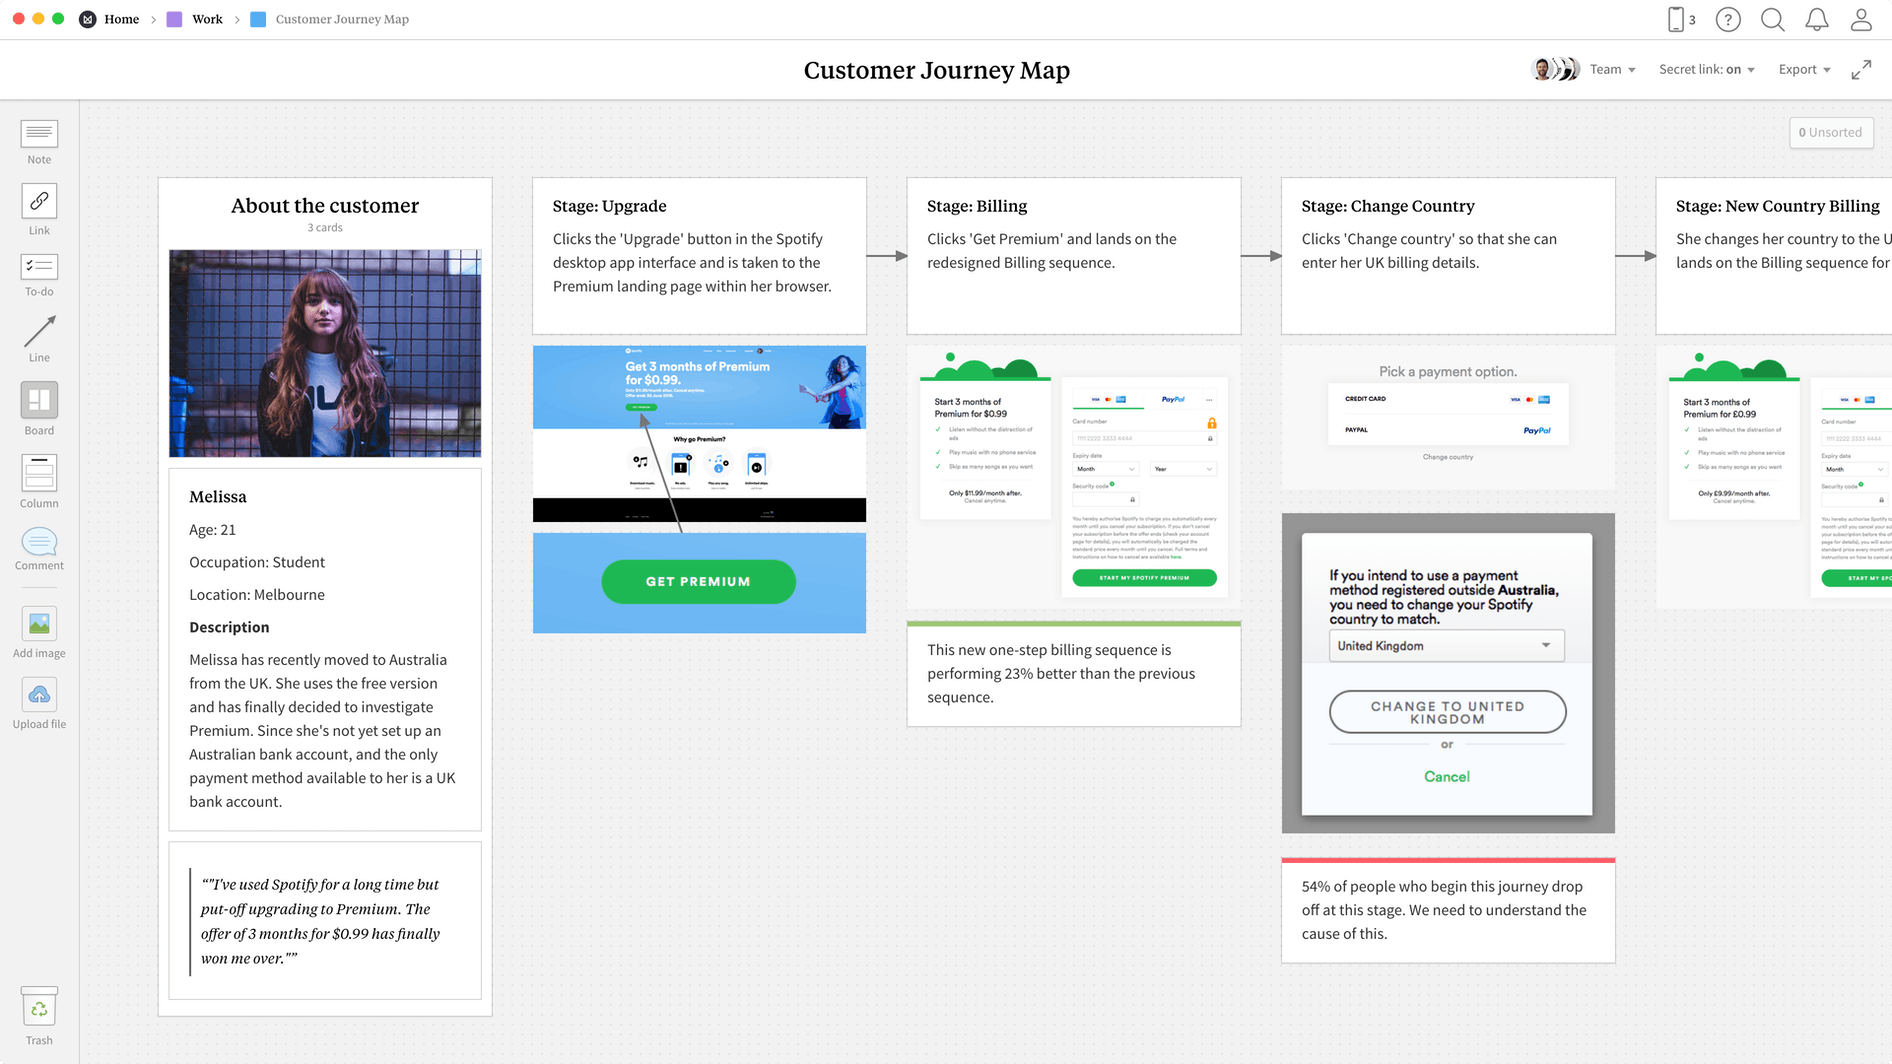 Customer Journey Map Template, within the Milanote app